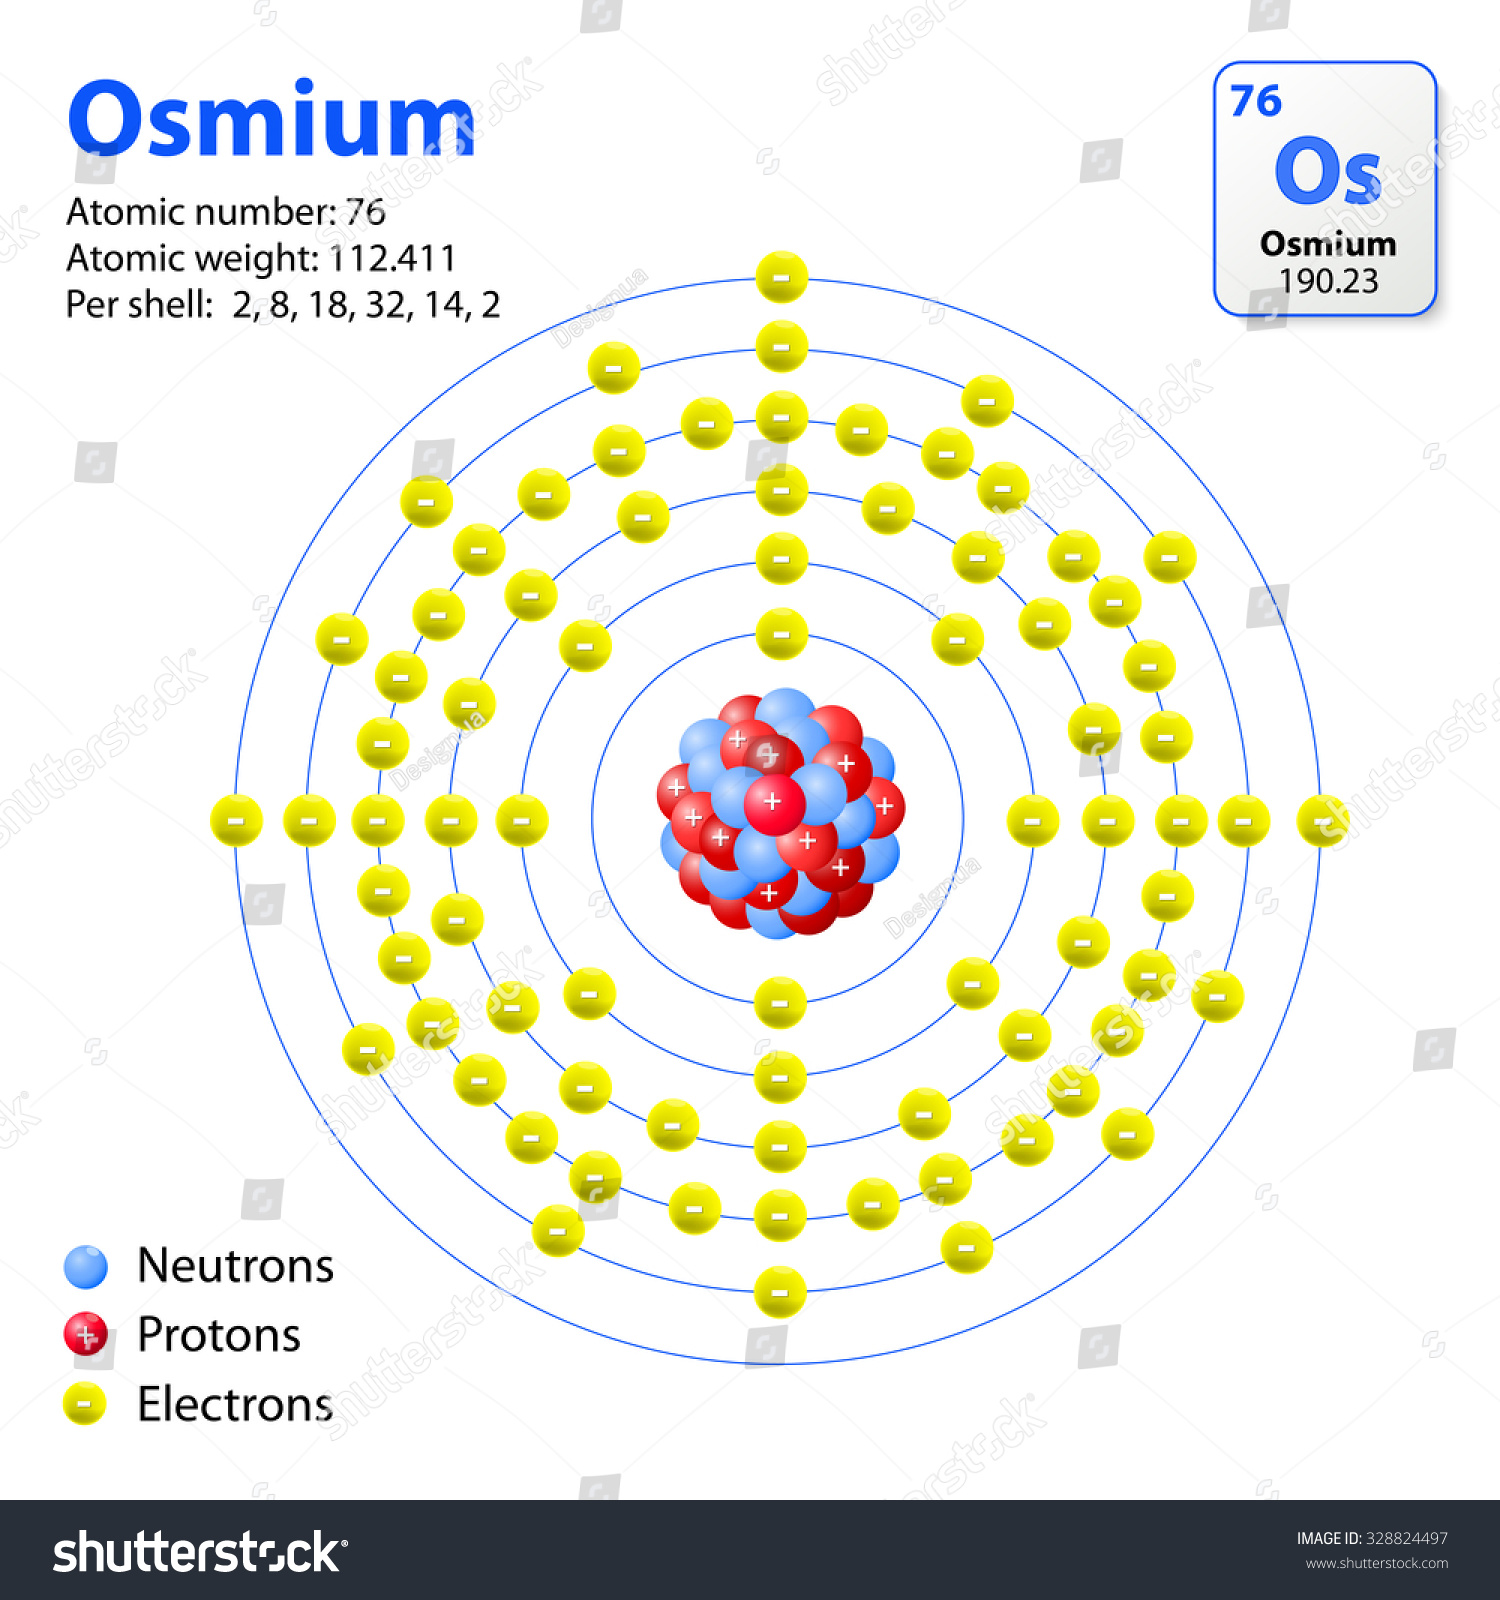 Osmium Platinum: This Diagram Shows The Electron Shell Configuration For